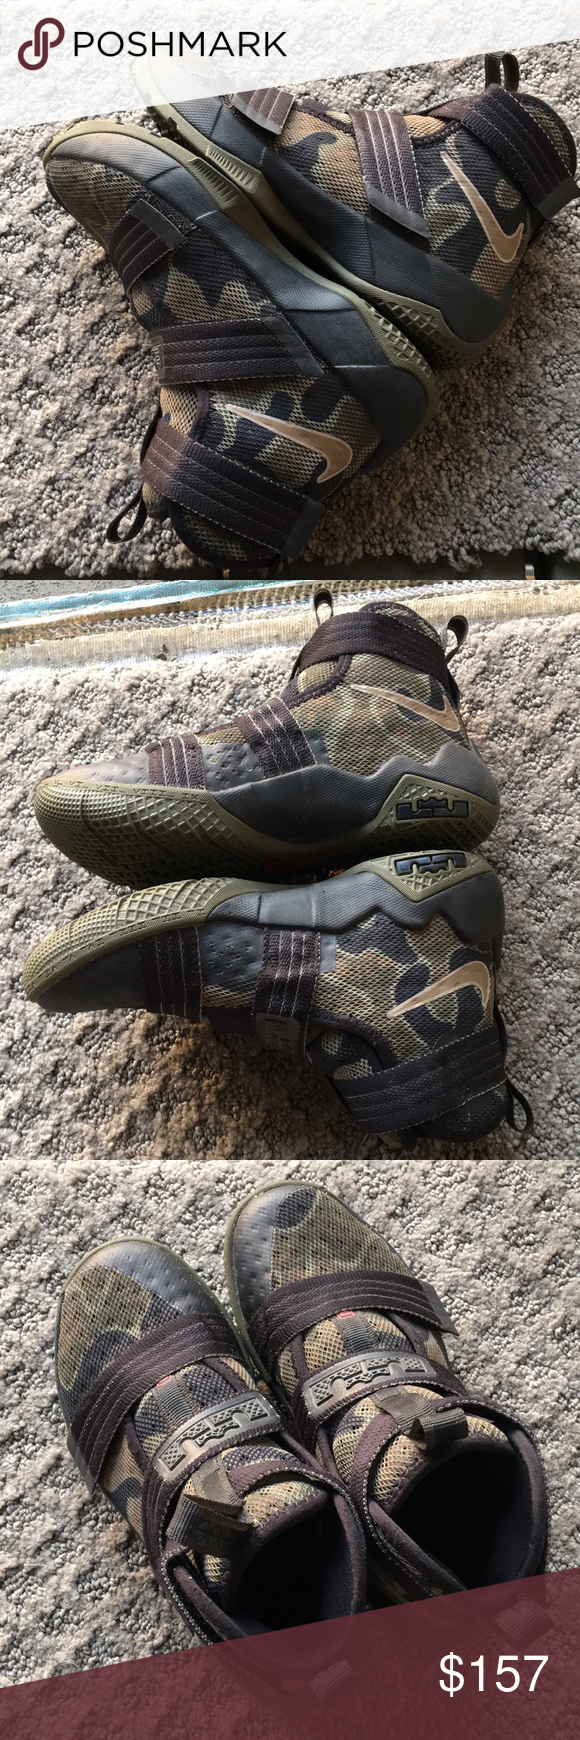 finest selection 43c4a c4c2b Brand New Nike LeBron Zoom Soldier 10 Camo Brand New Jordan s Size  13C  Style